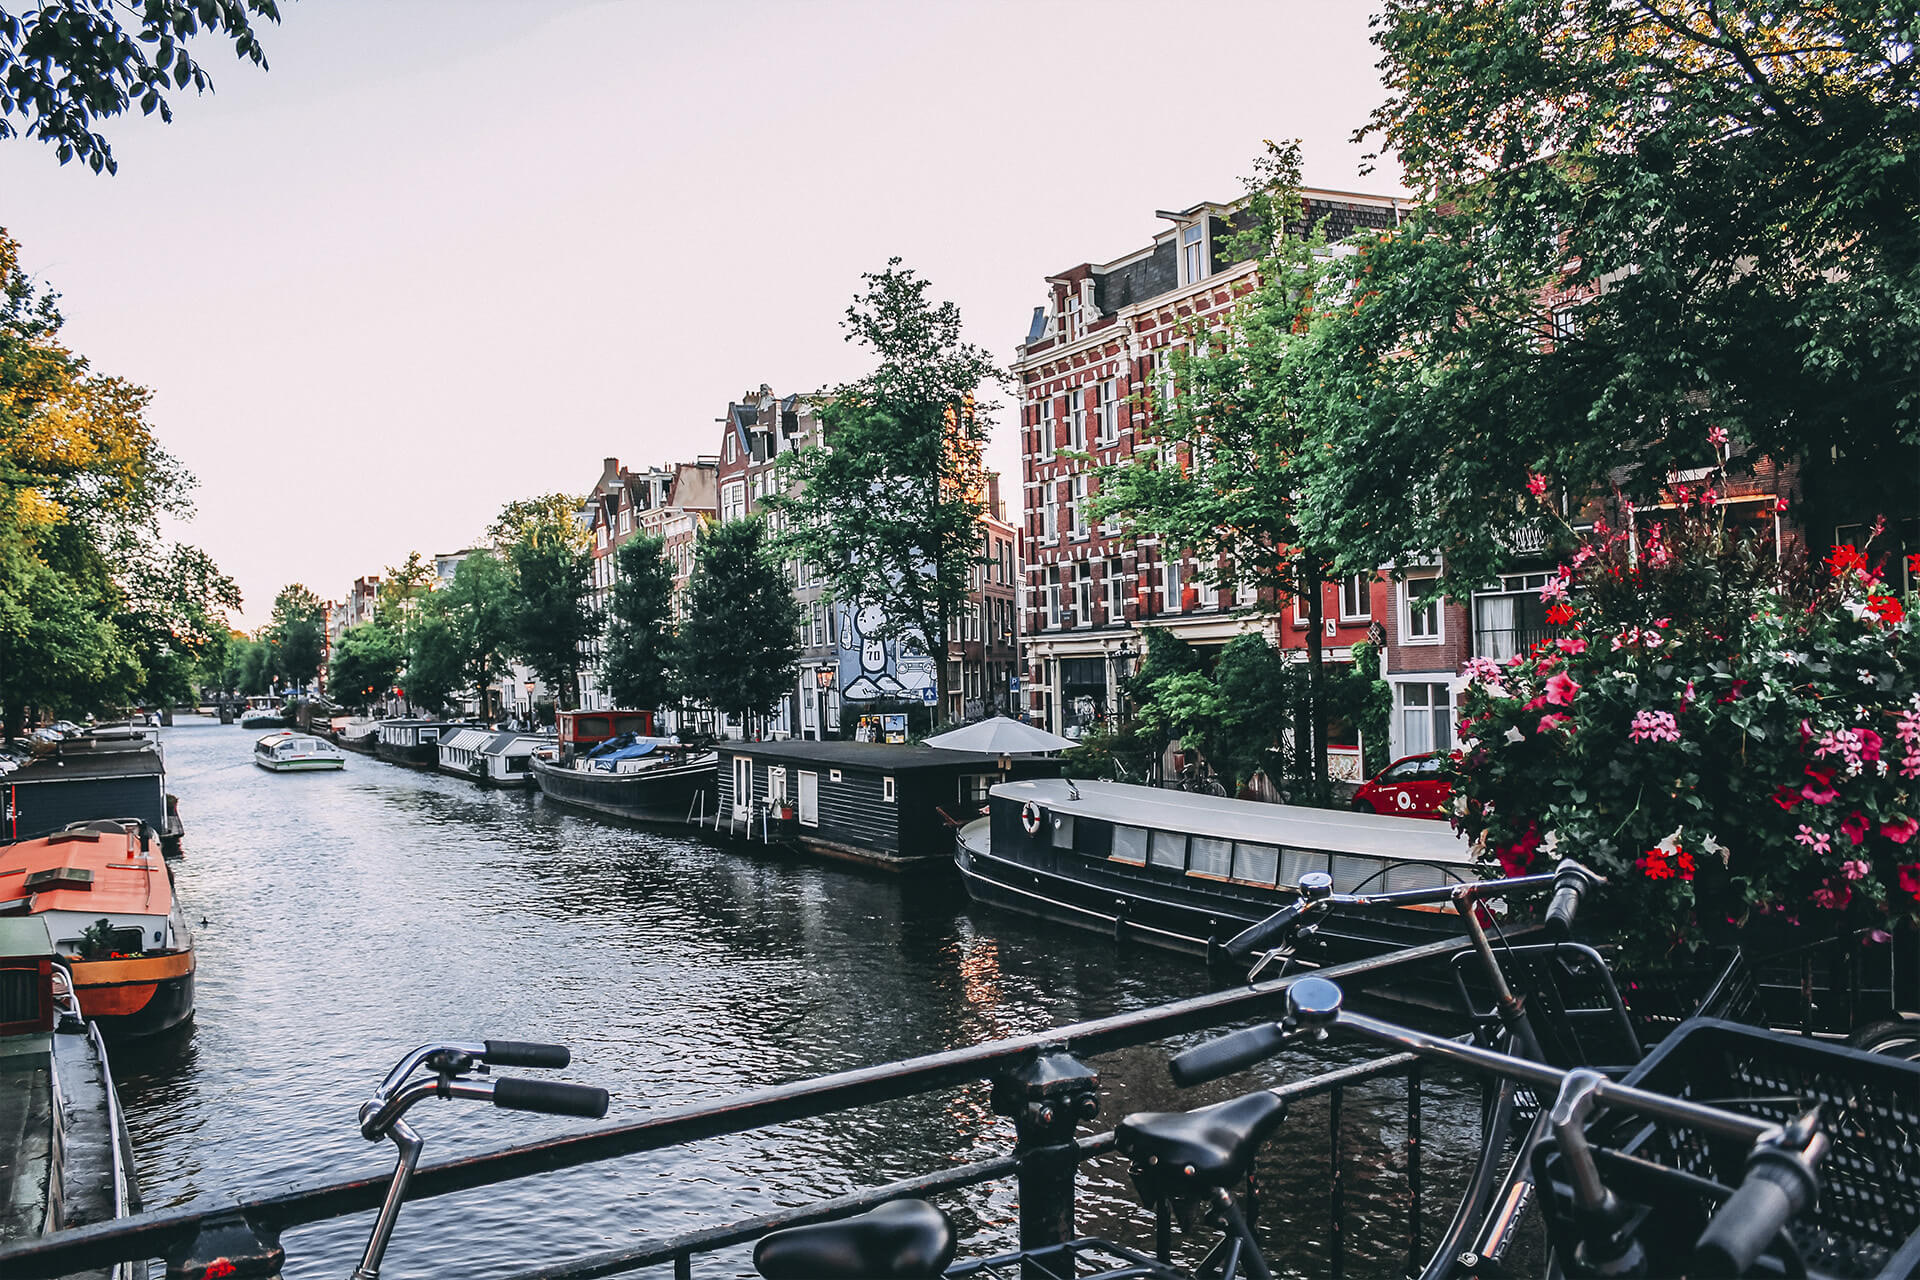 A photo of a river in Amsterdam